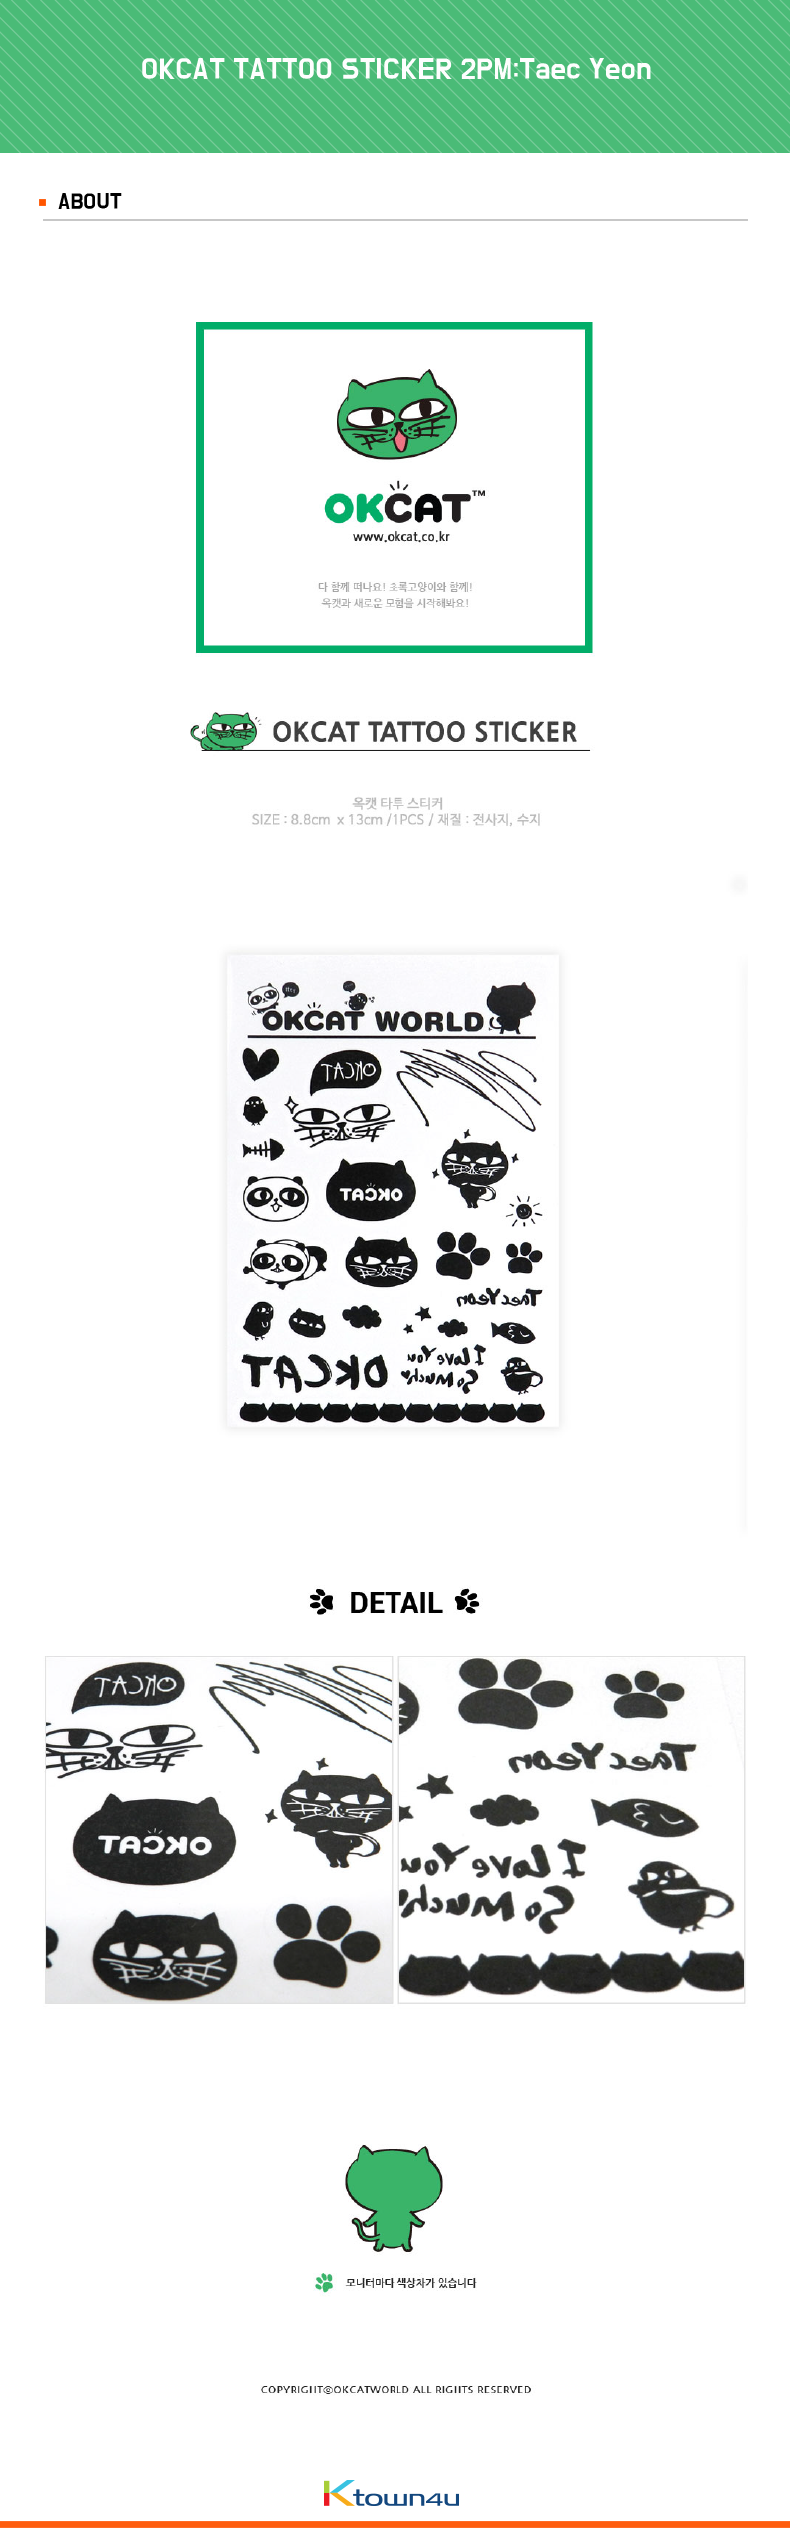 OKCAT TATTOO STICKER 2PM:Taec Yeon